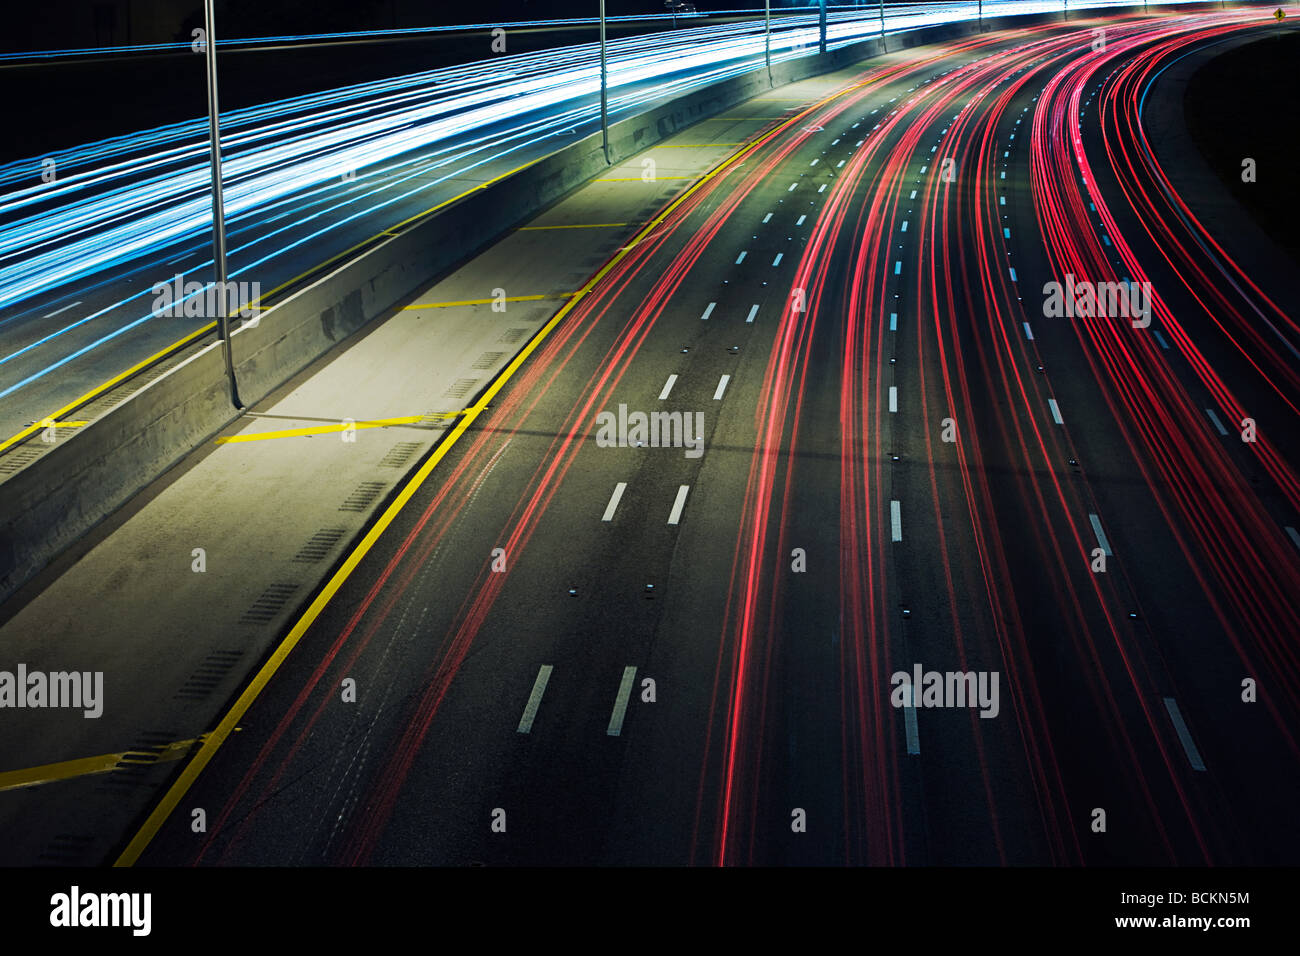 Automobile lights on highway - Stock Image